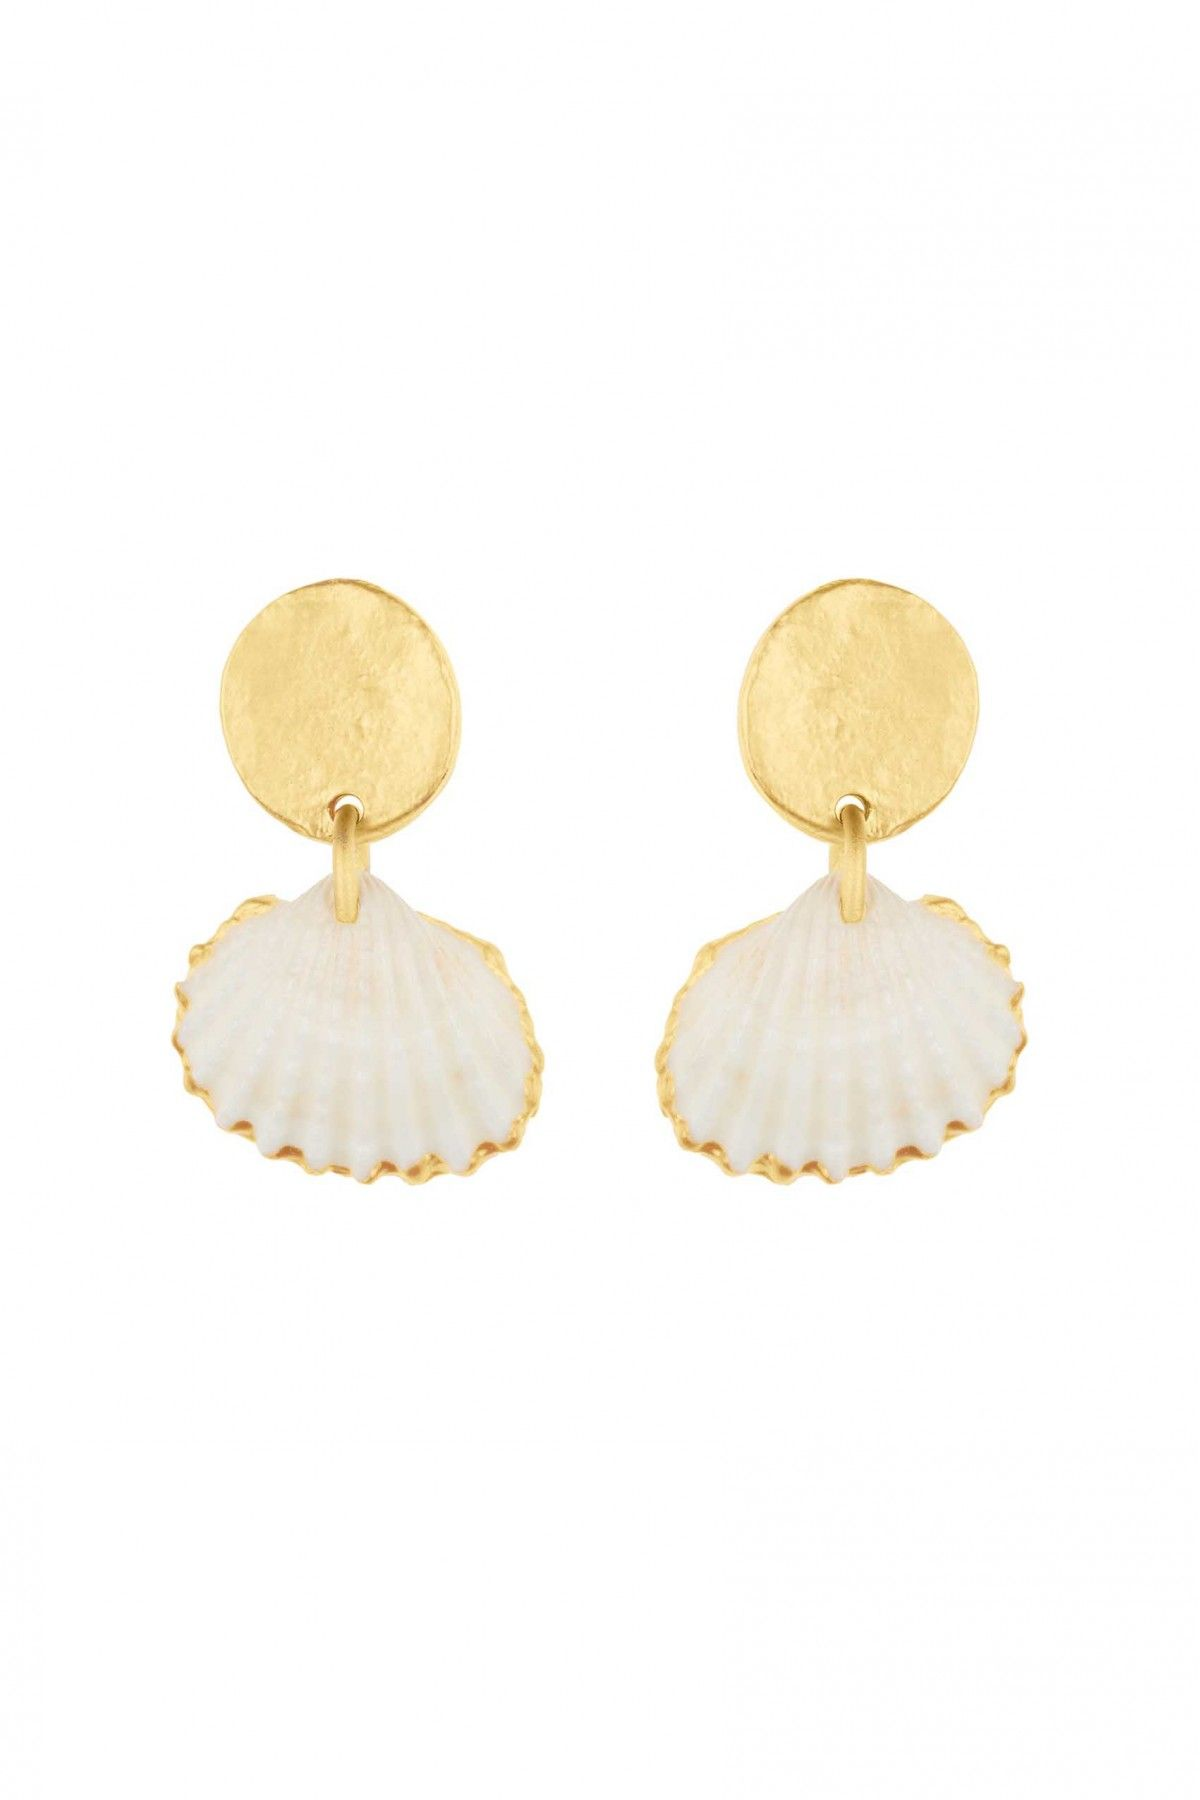 Byron Earrings